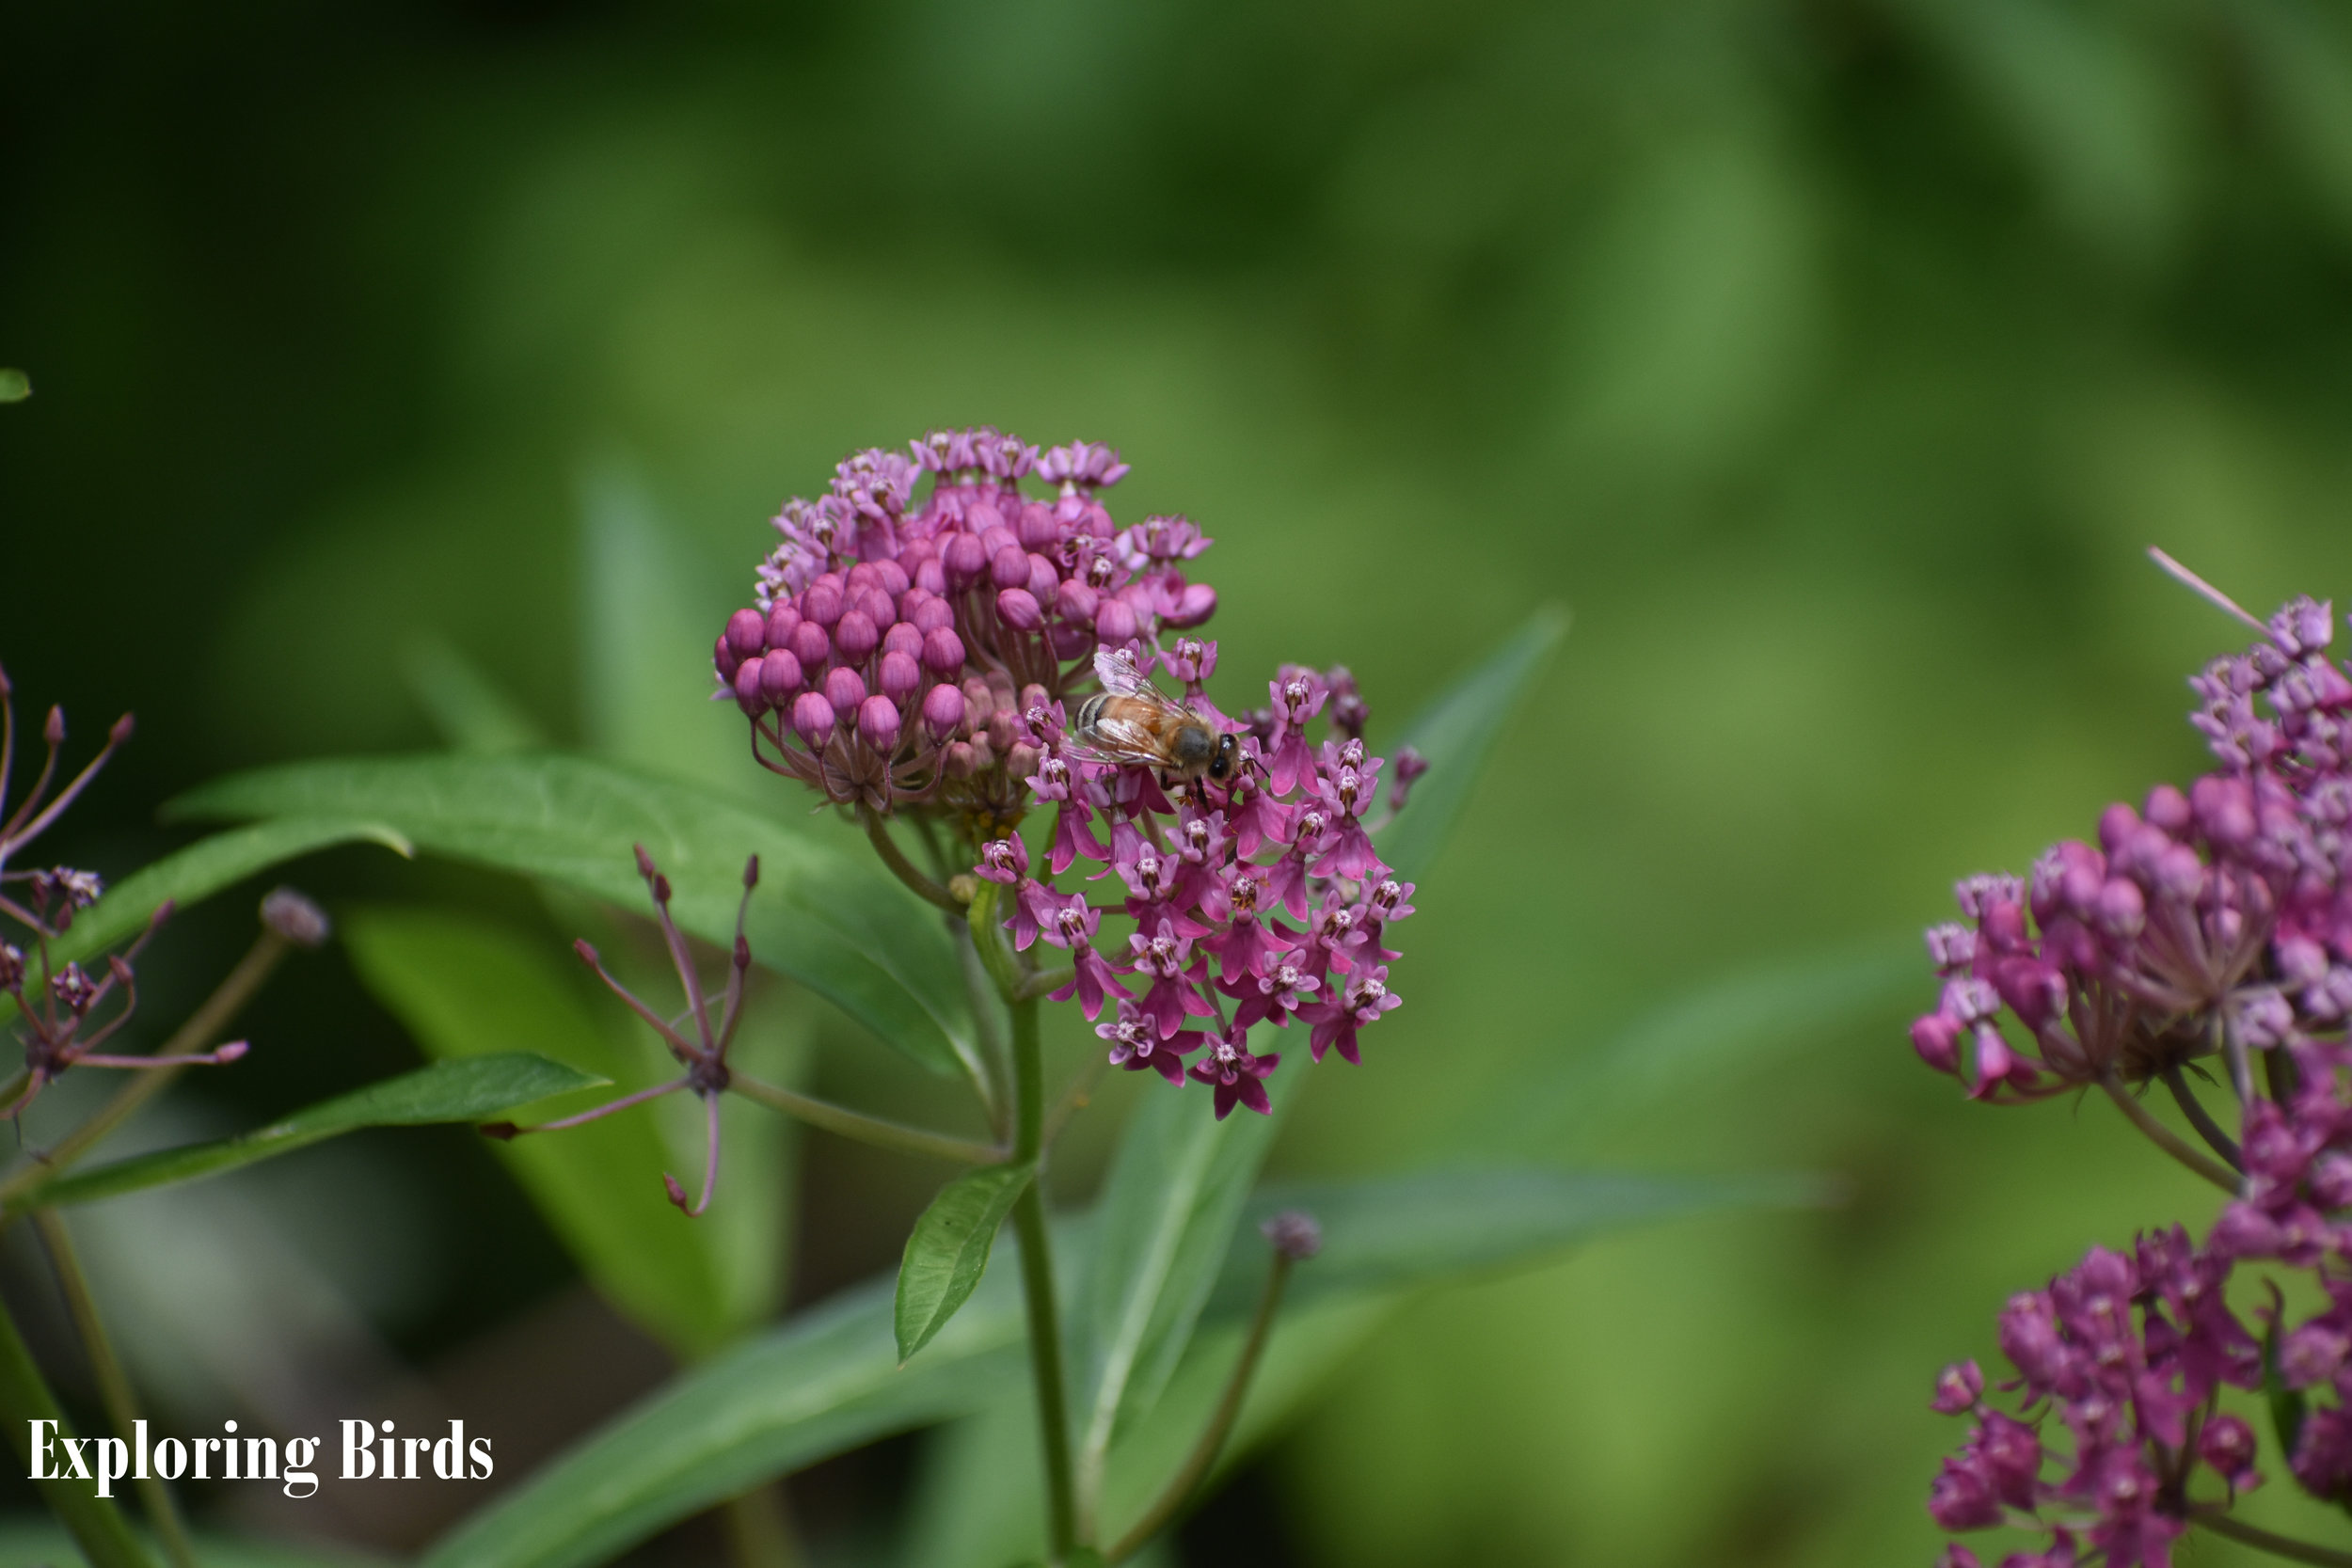 Swamp Milkweed is one of the best flowers to plant for attracting butterflies